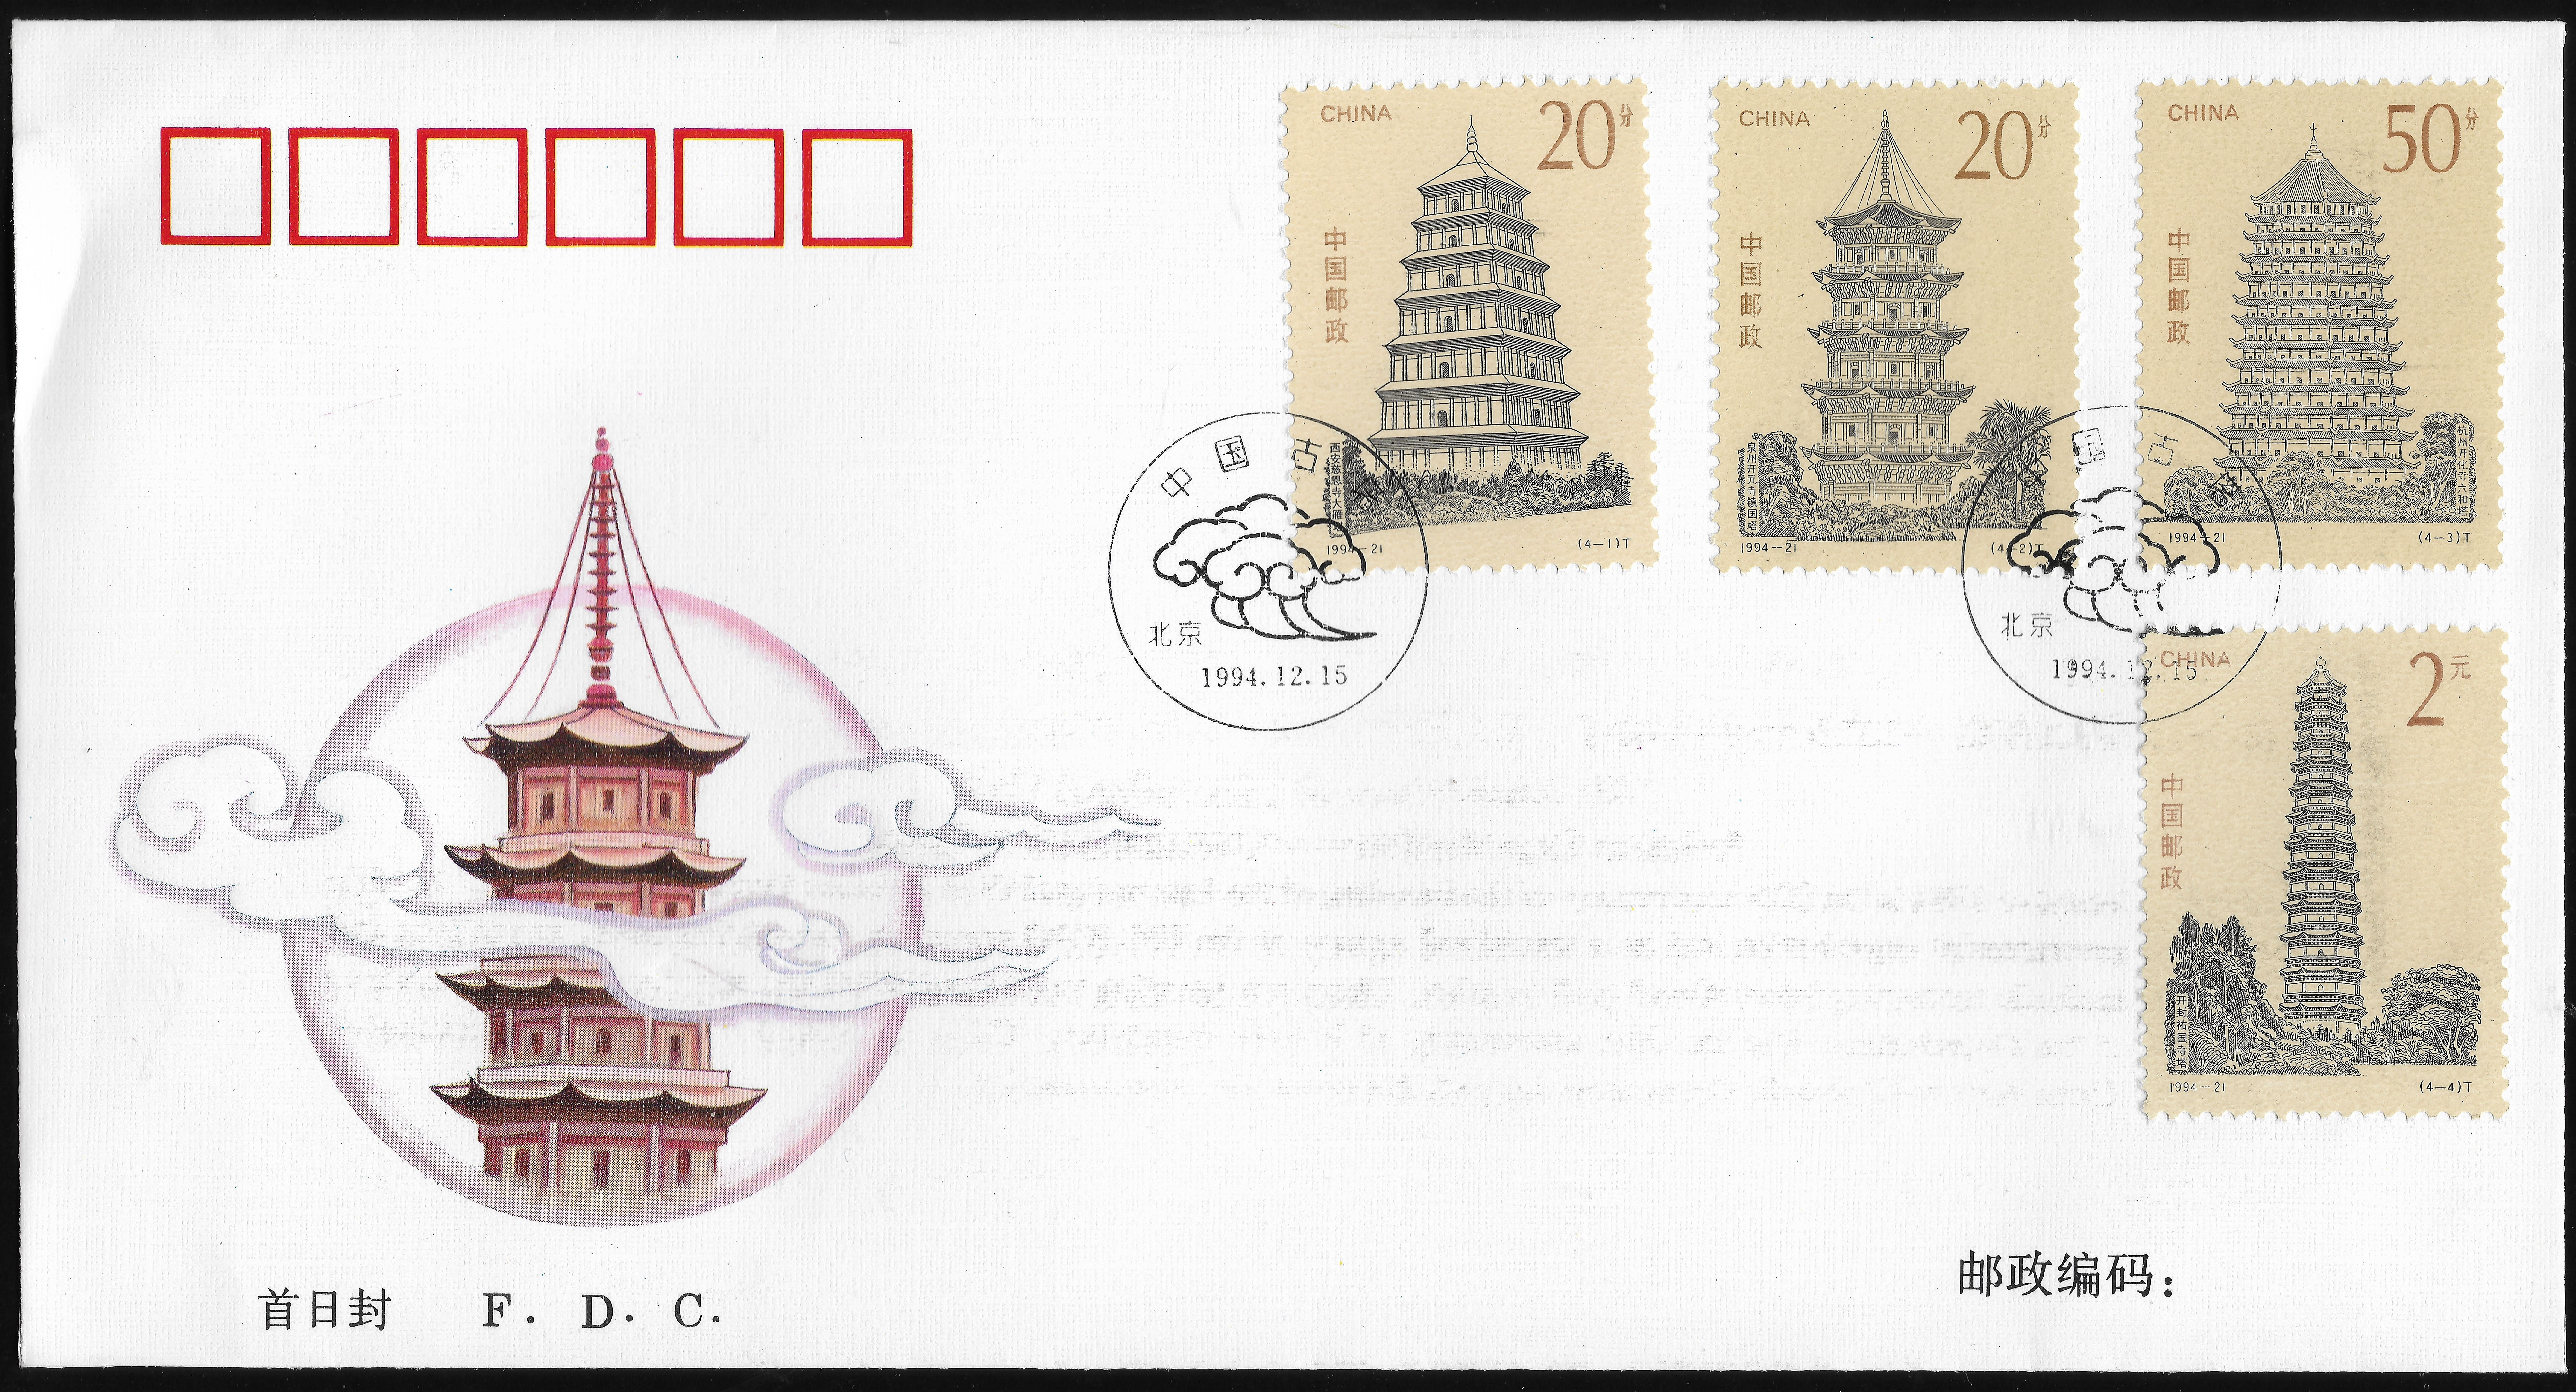 China, Reople's Republic of - Scott #2545-2548 (1994) first day cover